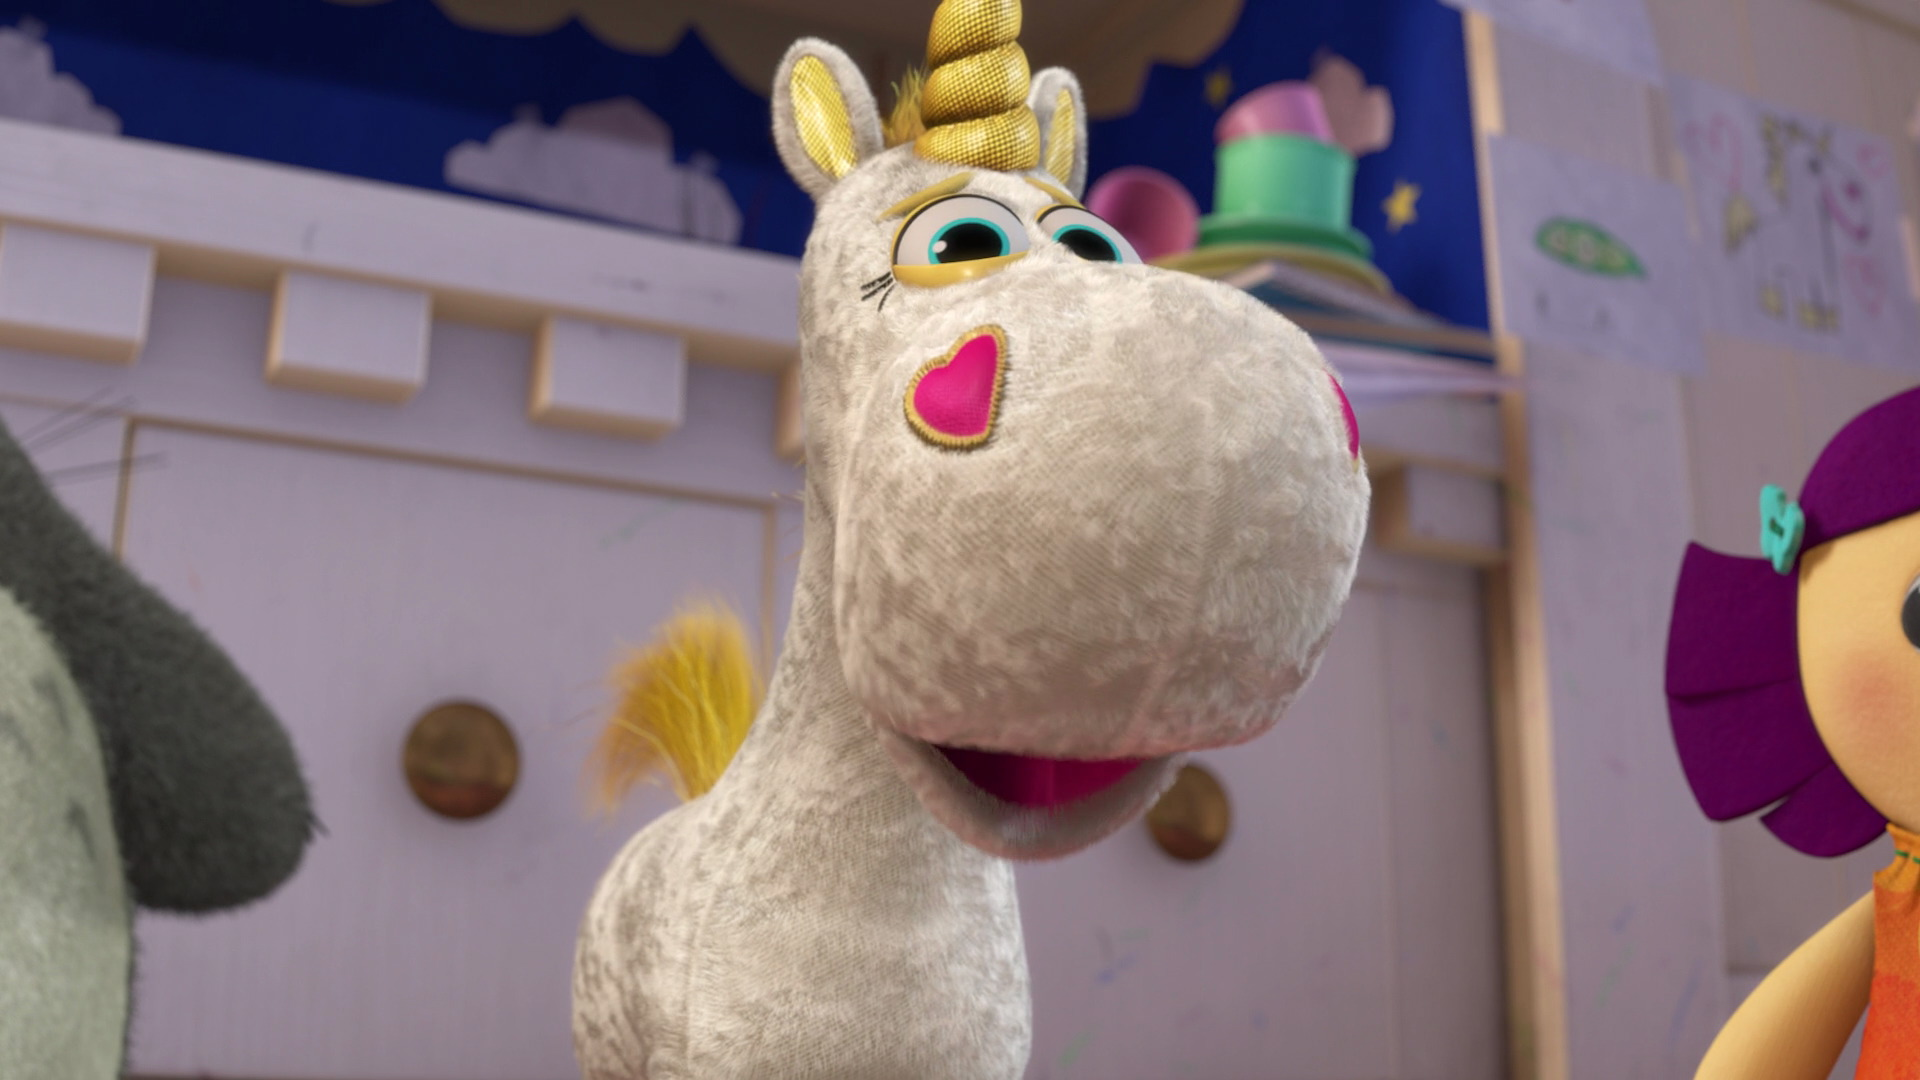 bouton-or-personnage-toy-story-3-02